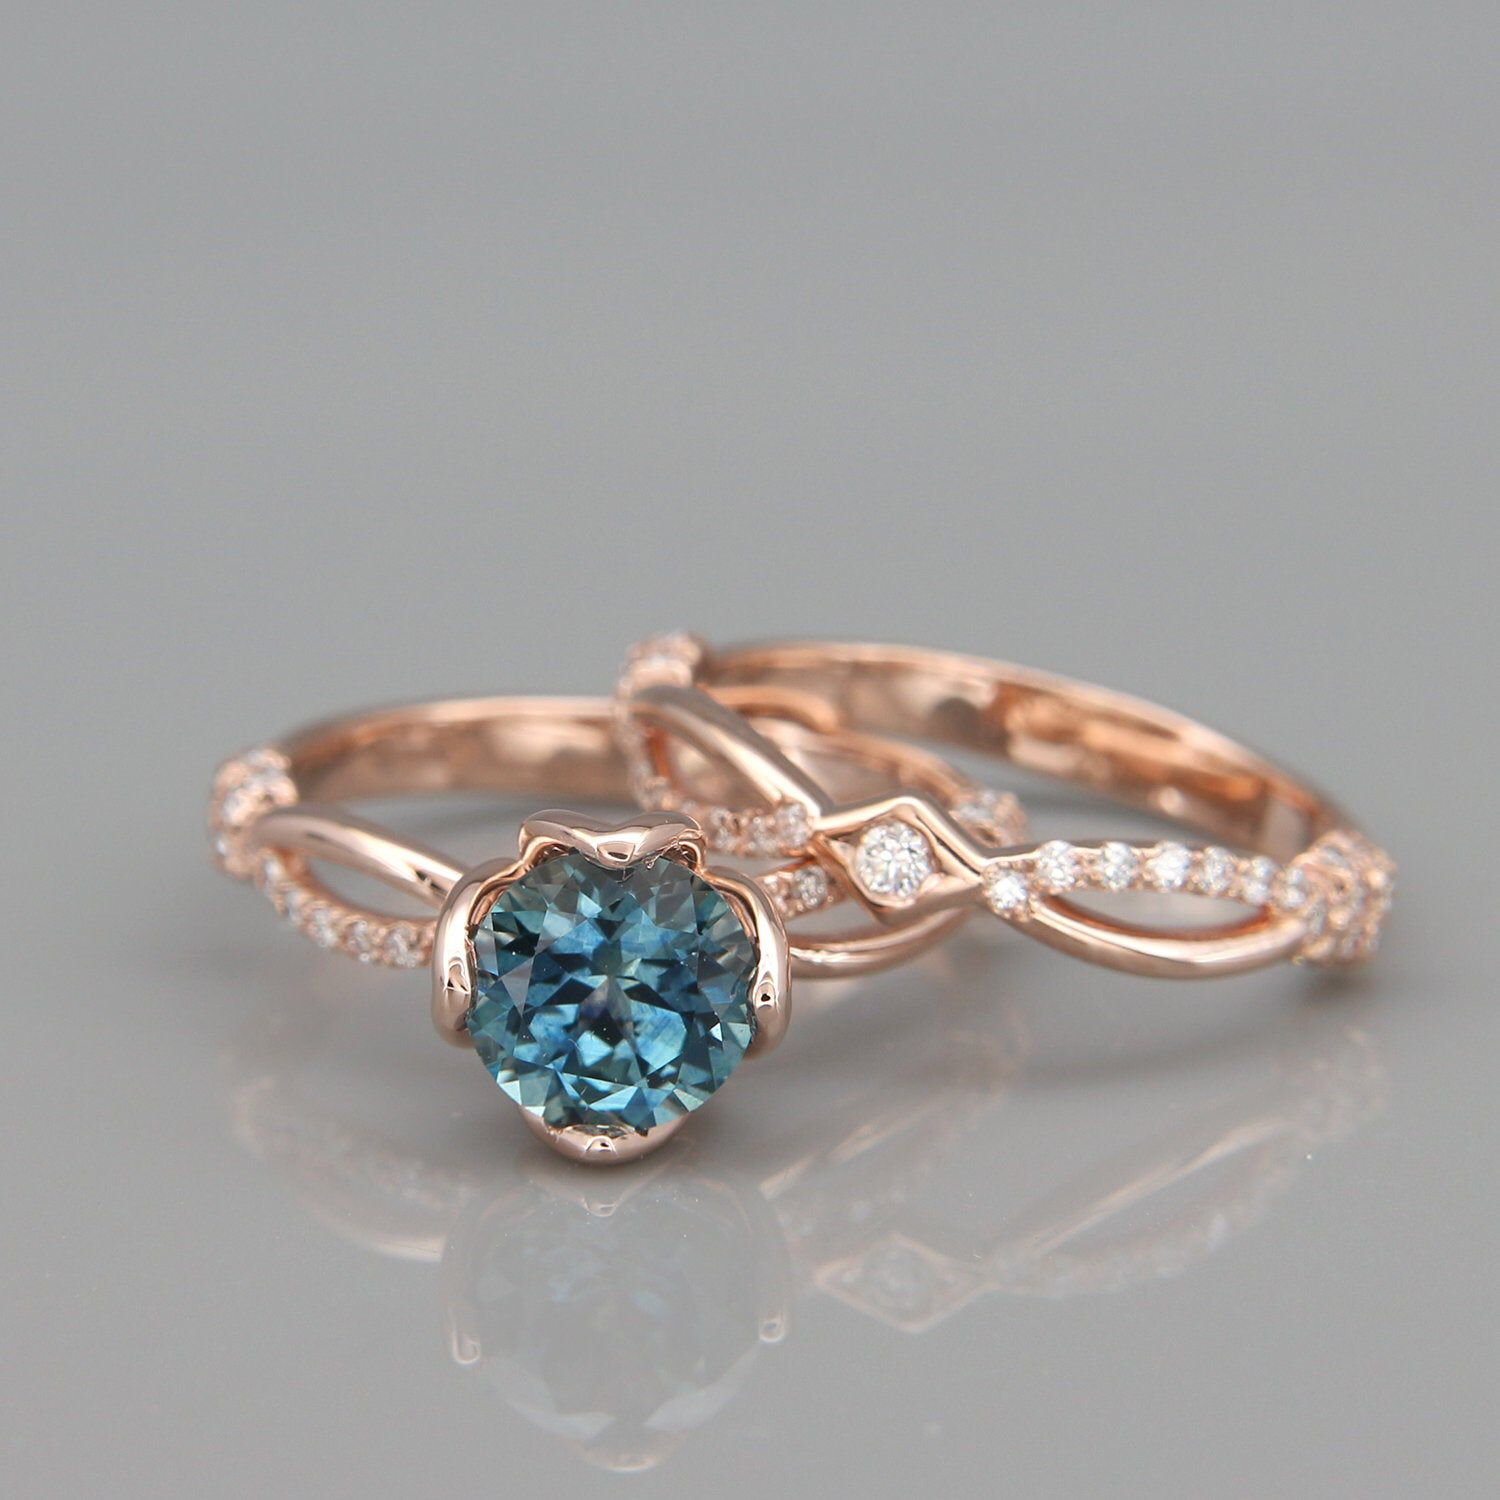 14K Rose Gold Teal Sapphire and Diamonds Bridal Rings Set